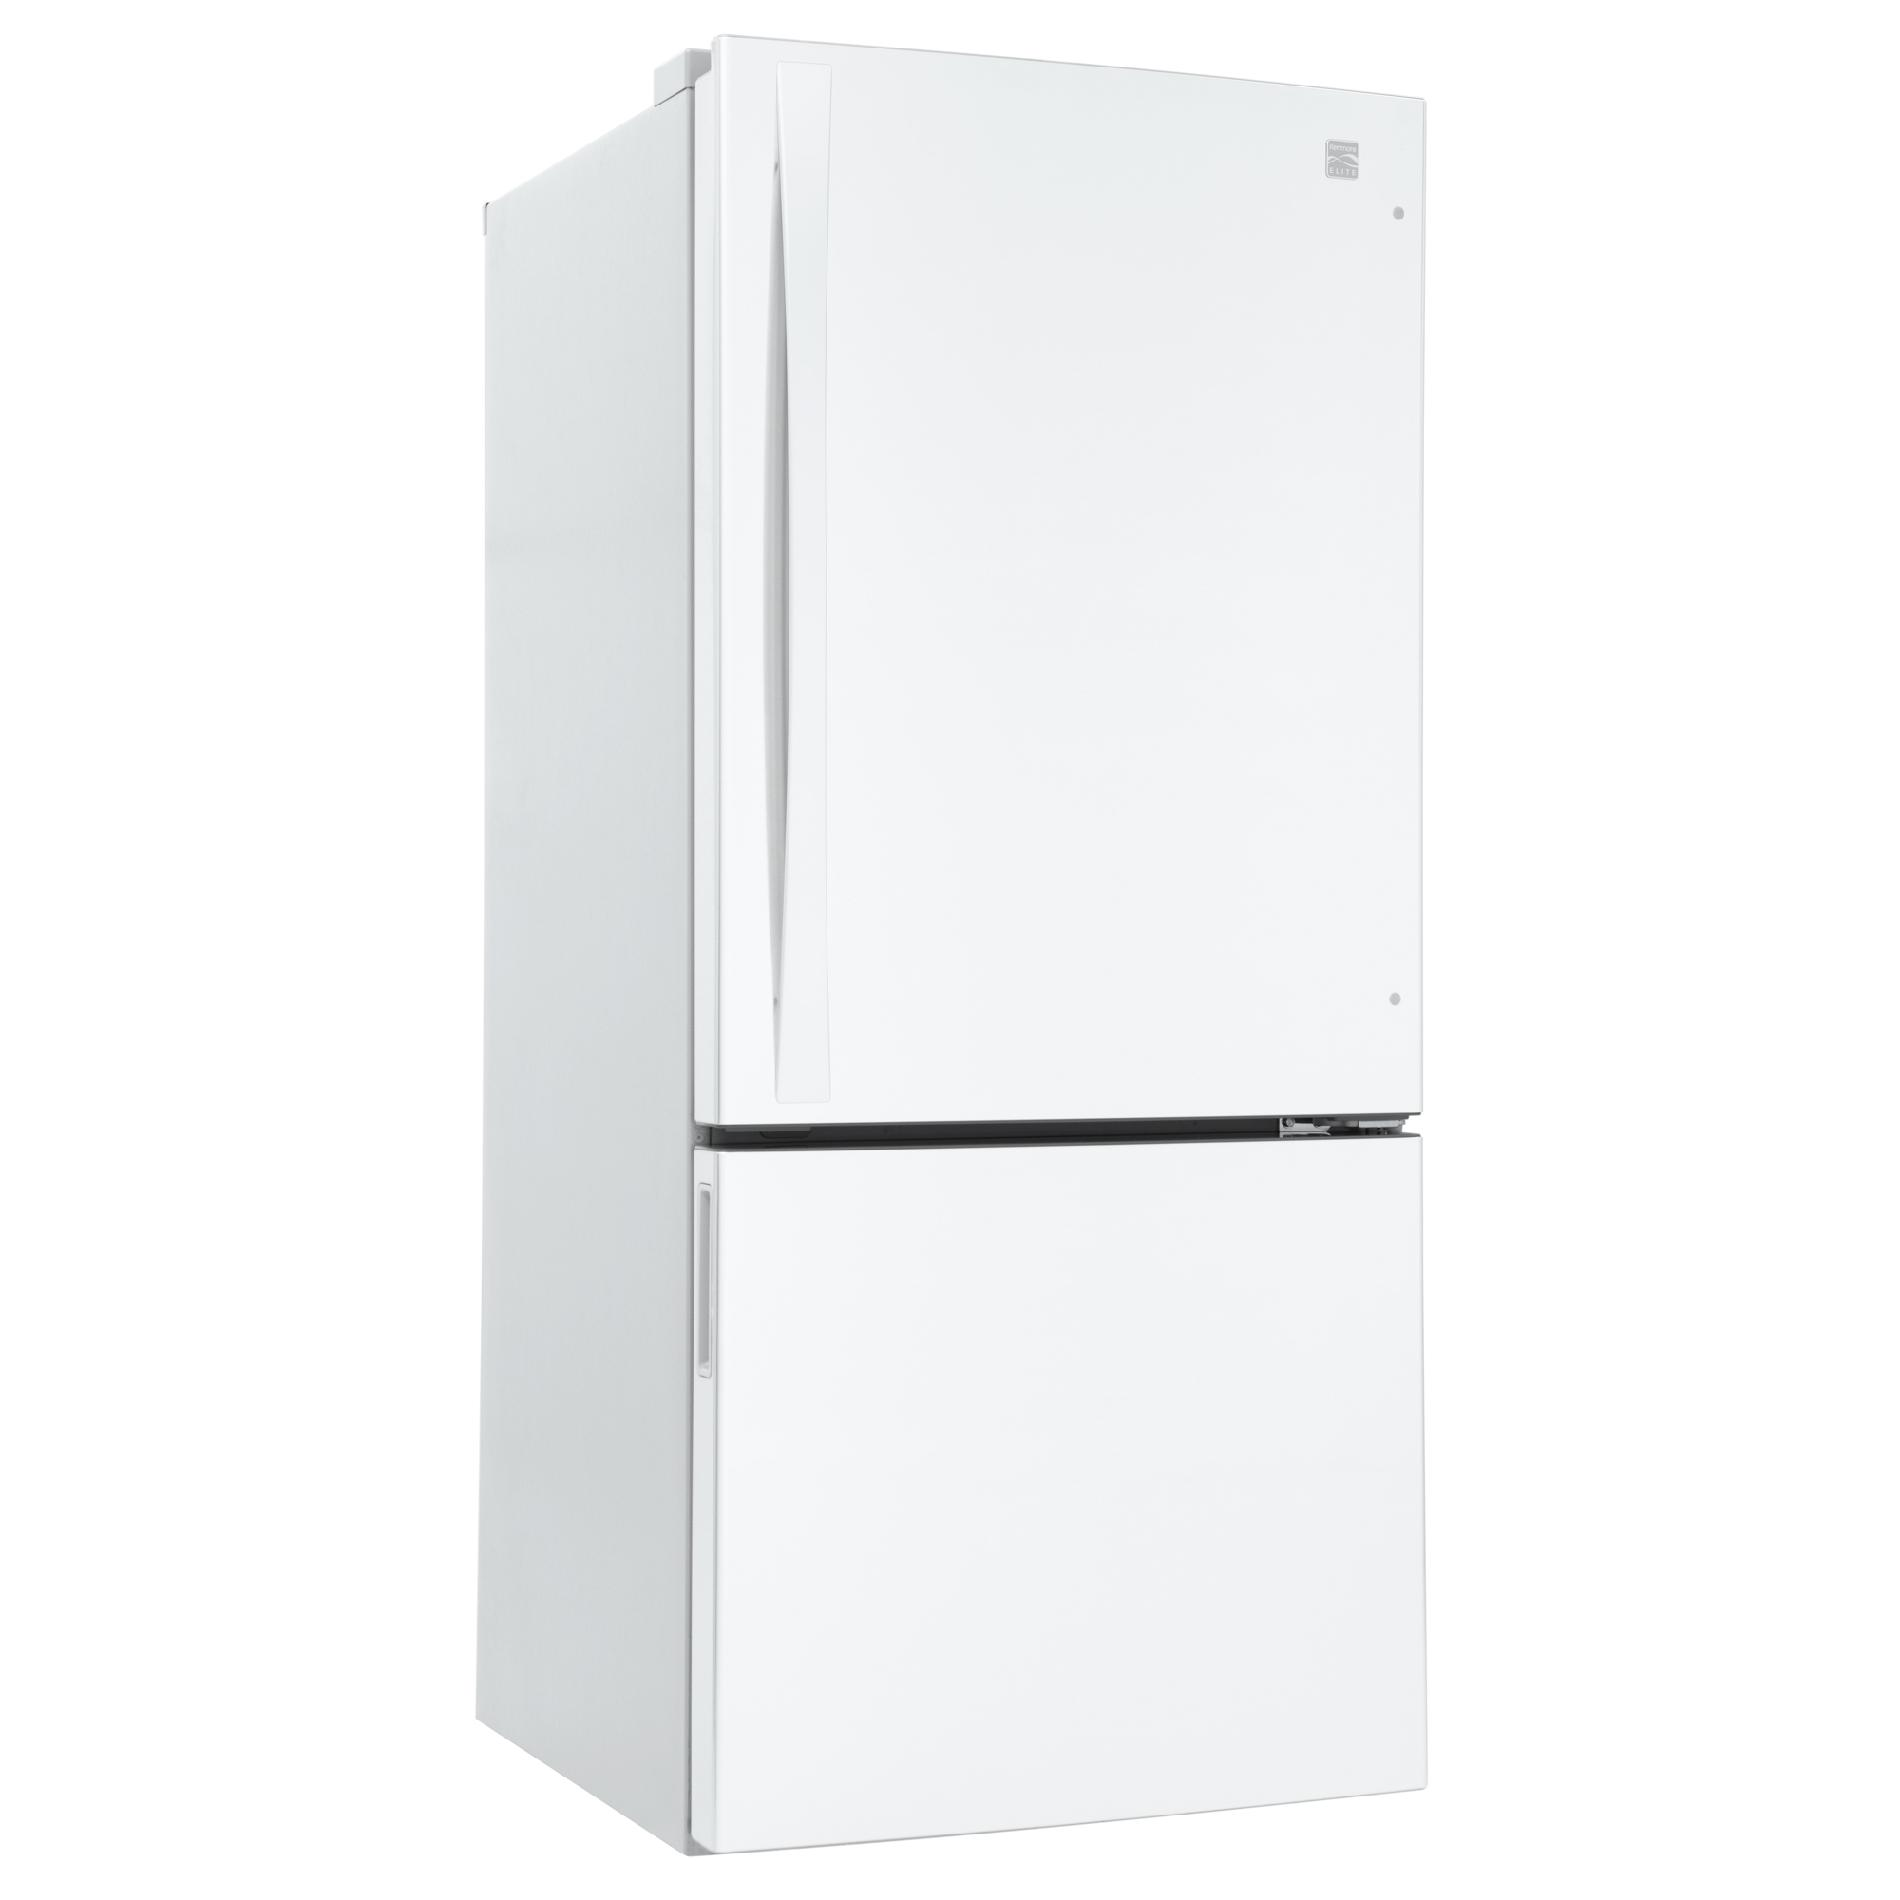 Kenmore Elite 22.1 cu. ft. Bottom-Freezer Refrigerator - White